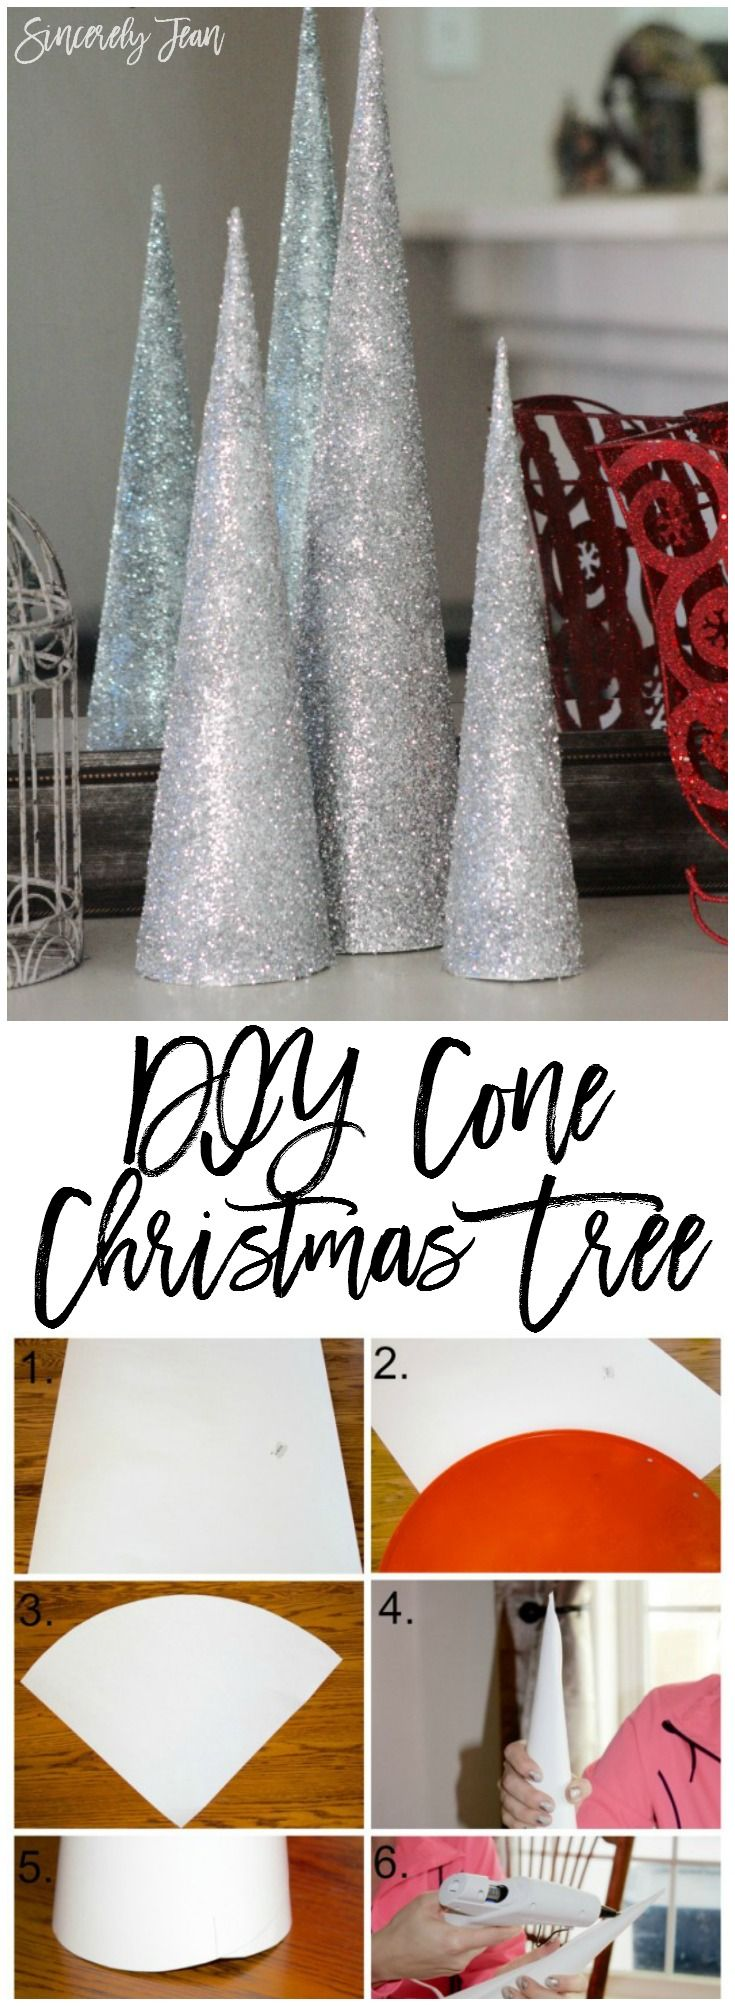 DIY Cone Christmas Tree - Step by step tutorial for a simple and beautiful Christmas craft! | www.sincerelyjean.com